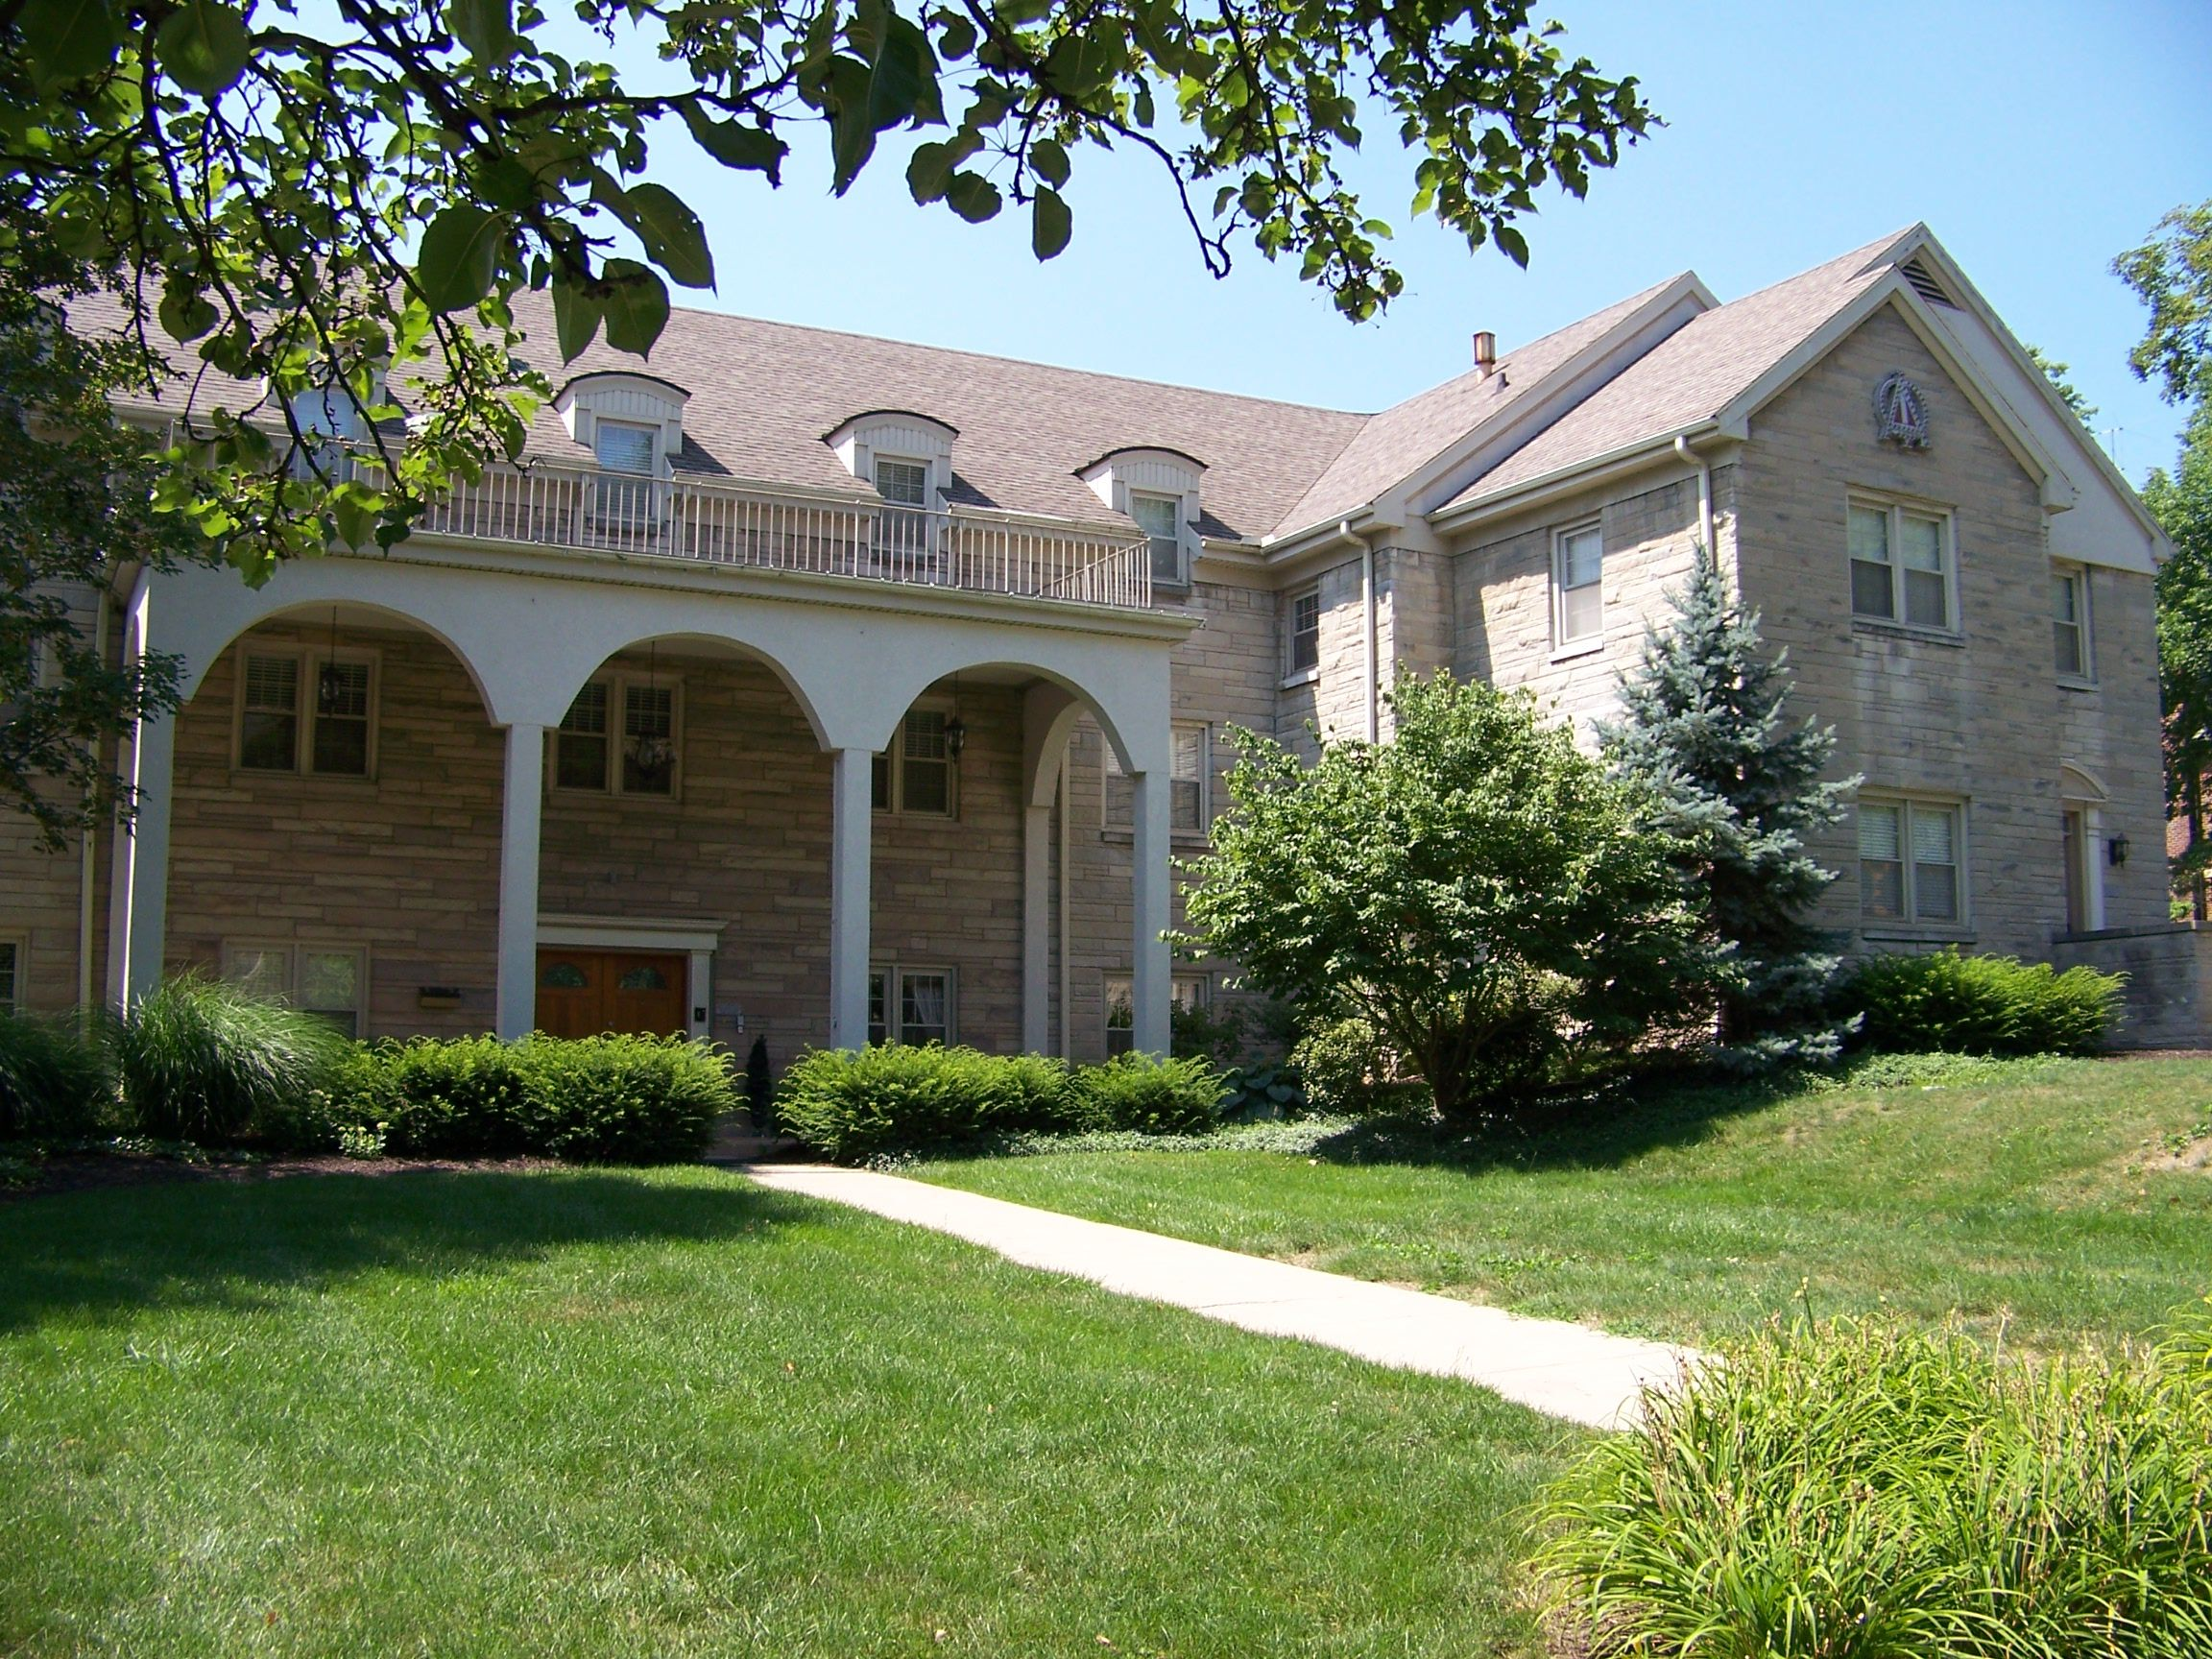 alpha phi, beta tau chapter - indiana university | alpha phi